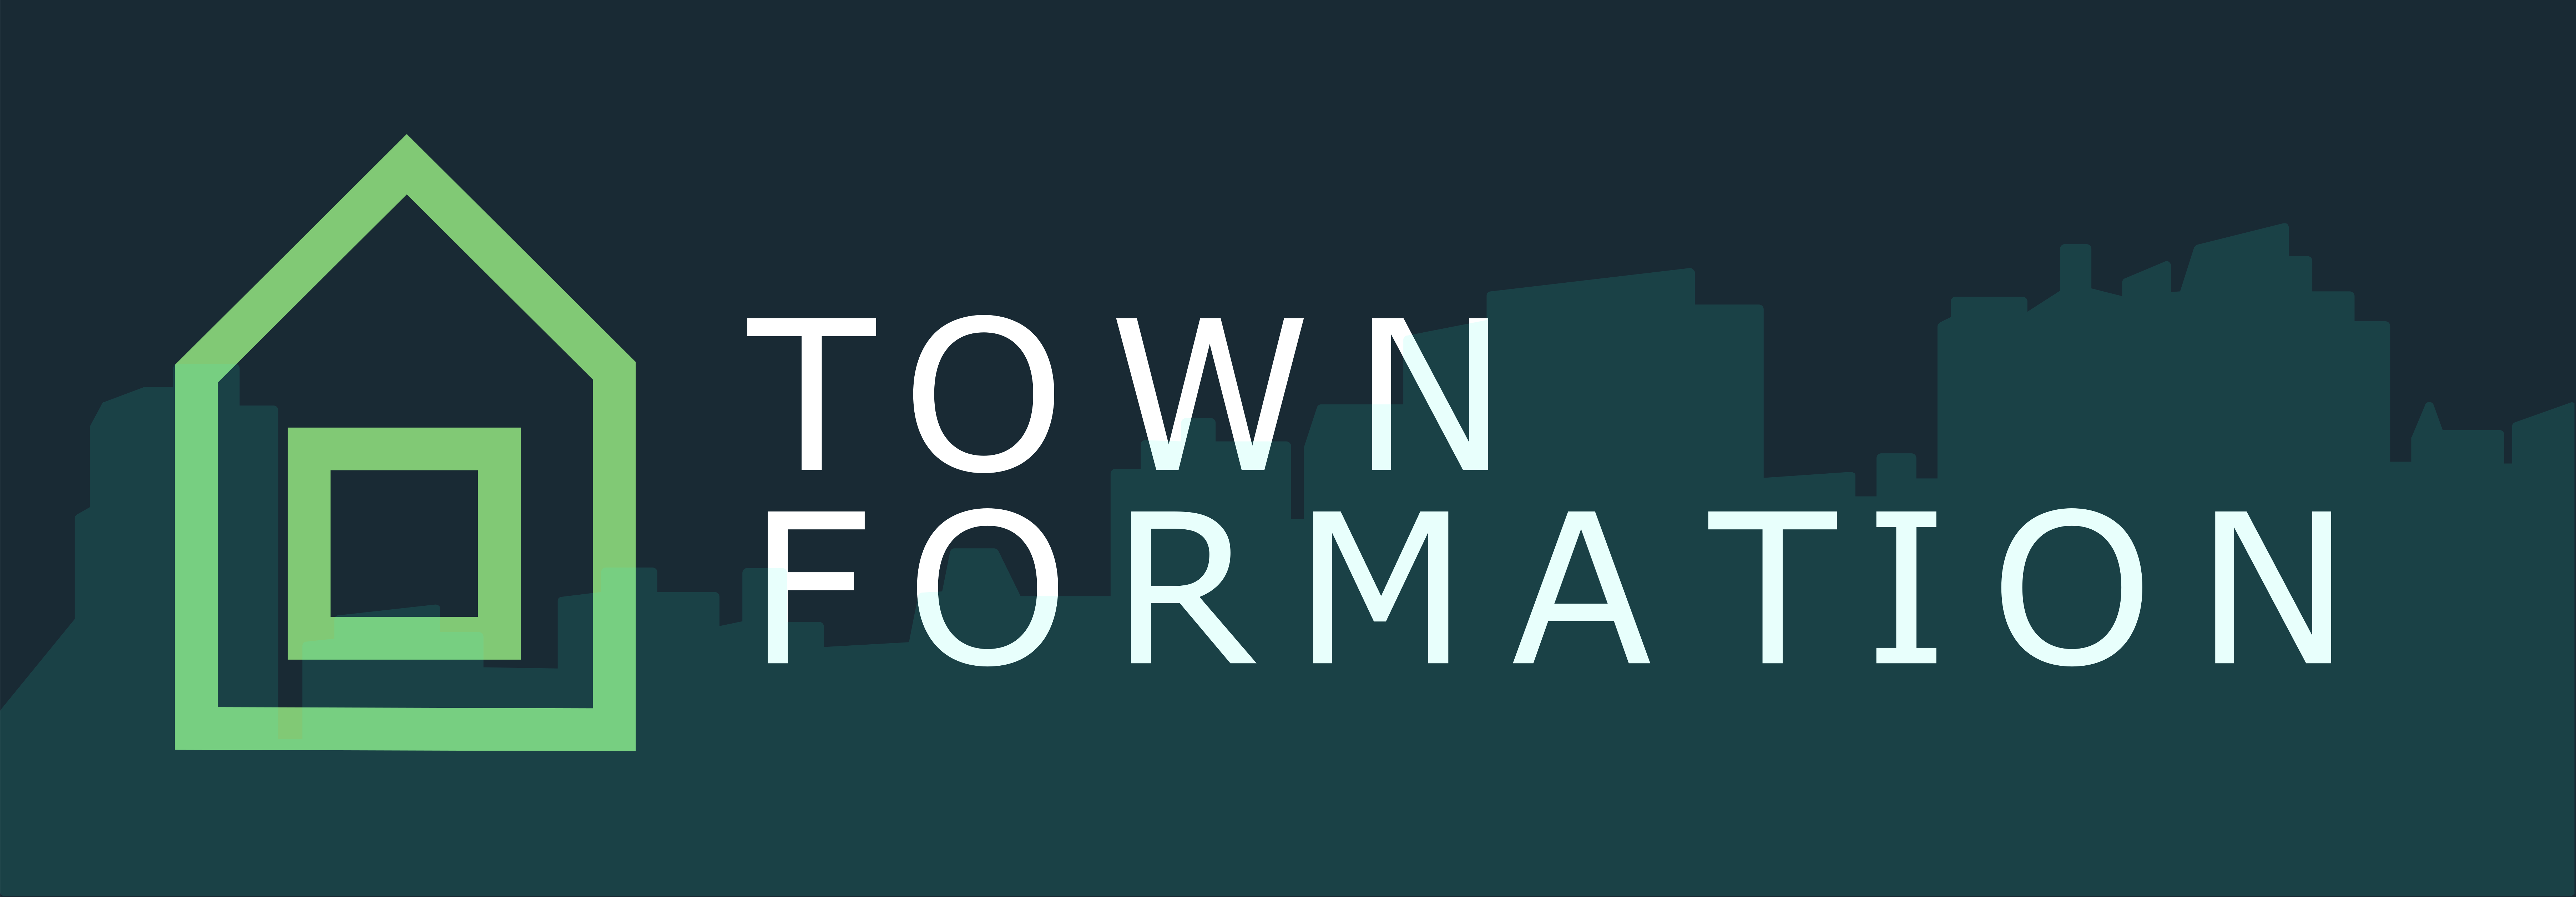 Town Formation Limited